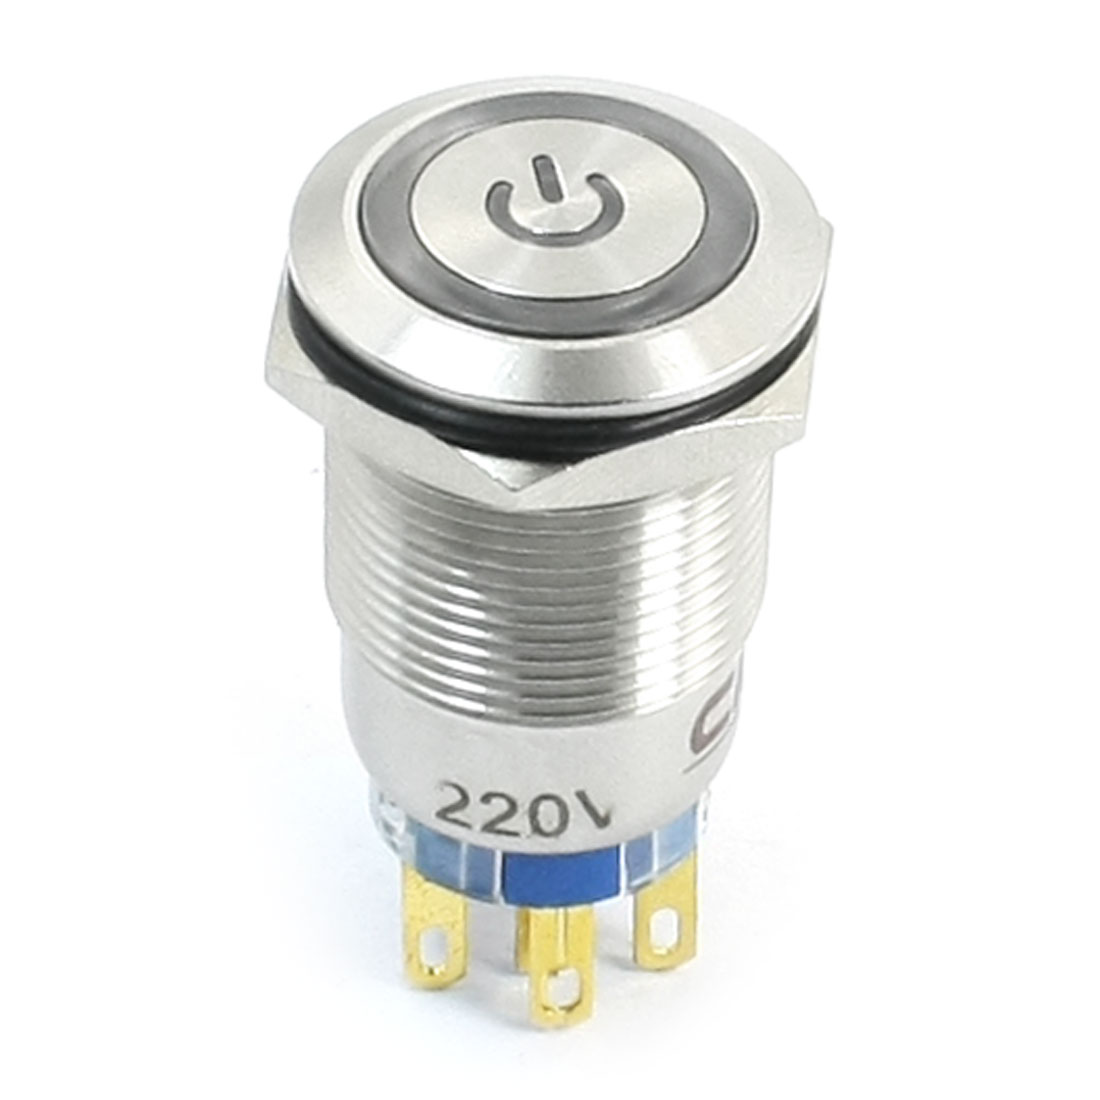 SPDT 1NO 1NC Momentary AC 220V Light Volt Stainless Steel Push Button Switch